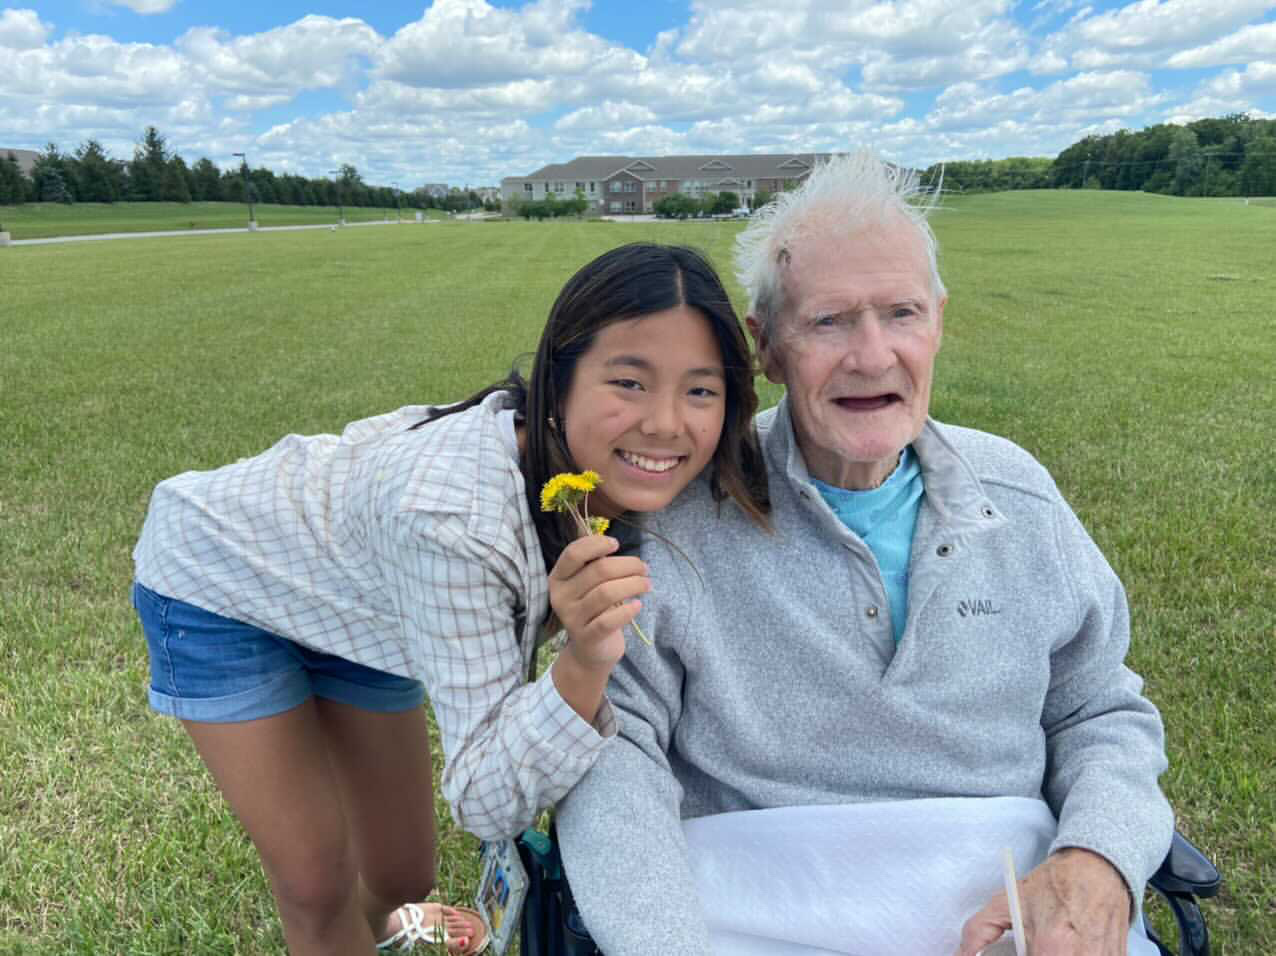 Junior Katie O'Daniel poses with her grandfather outside of their home on the yard. She said she likes the family aspect and increased time she gets to spend as a family because of his presence.